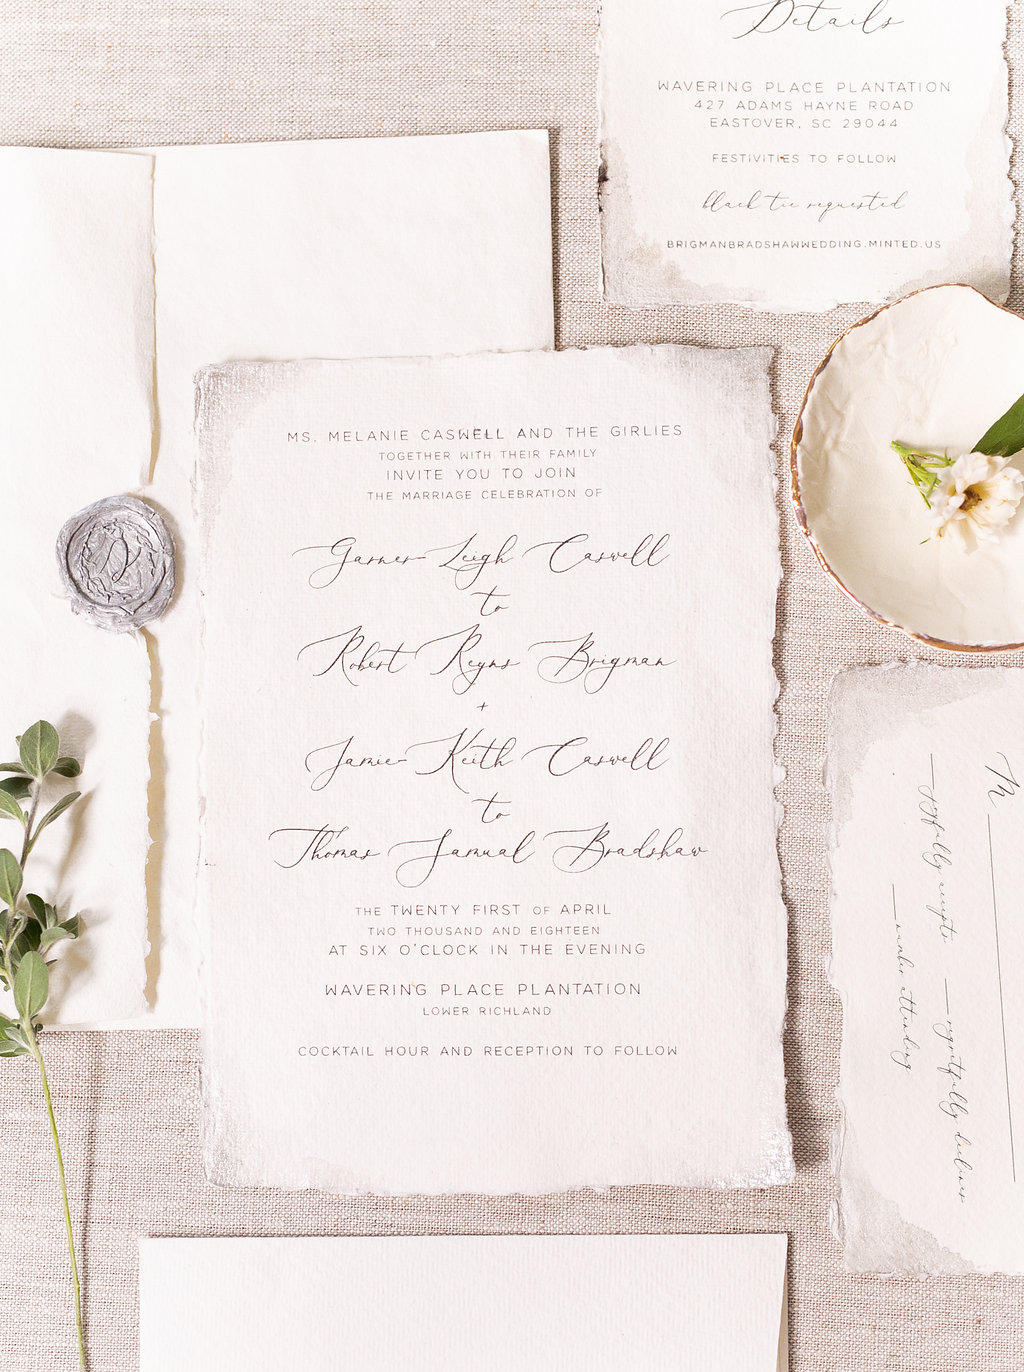 double wedding stationary suite on white deckled-edge paper